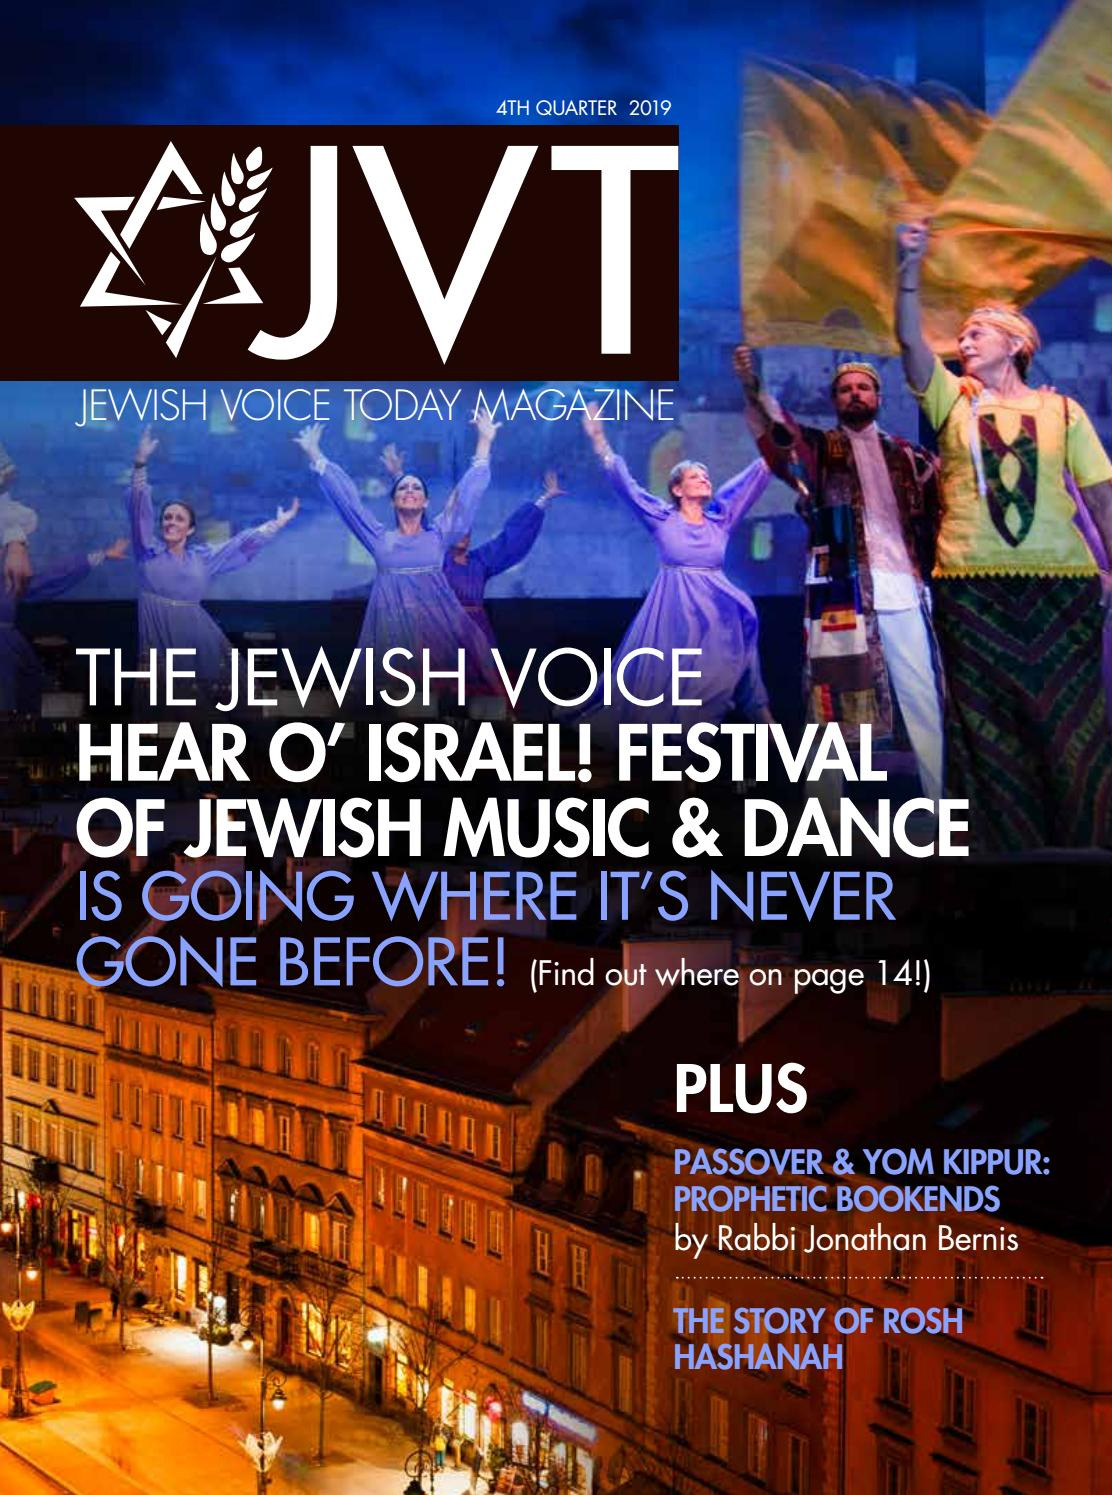 2019 Q4 Jewish Voice Today Magazine By Jewish Voice Ministries International Issuu